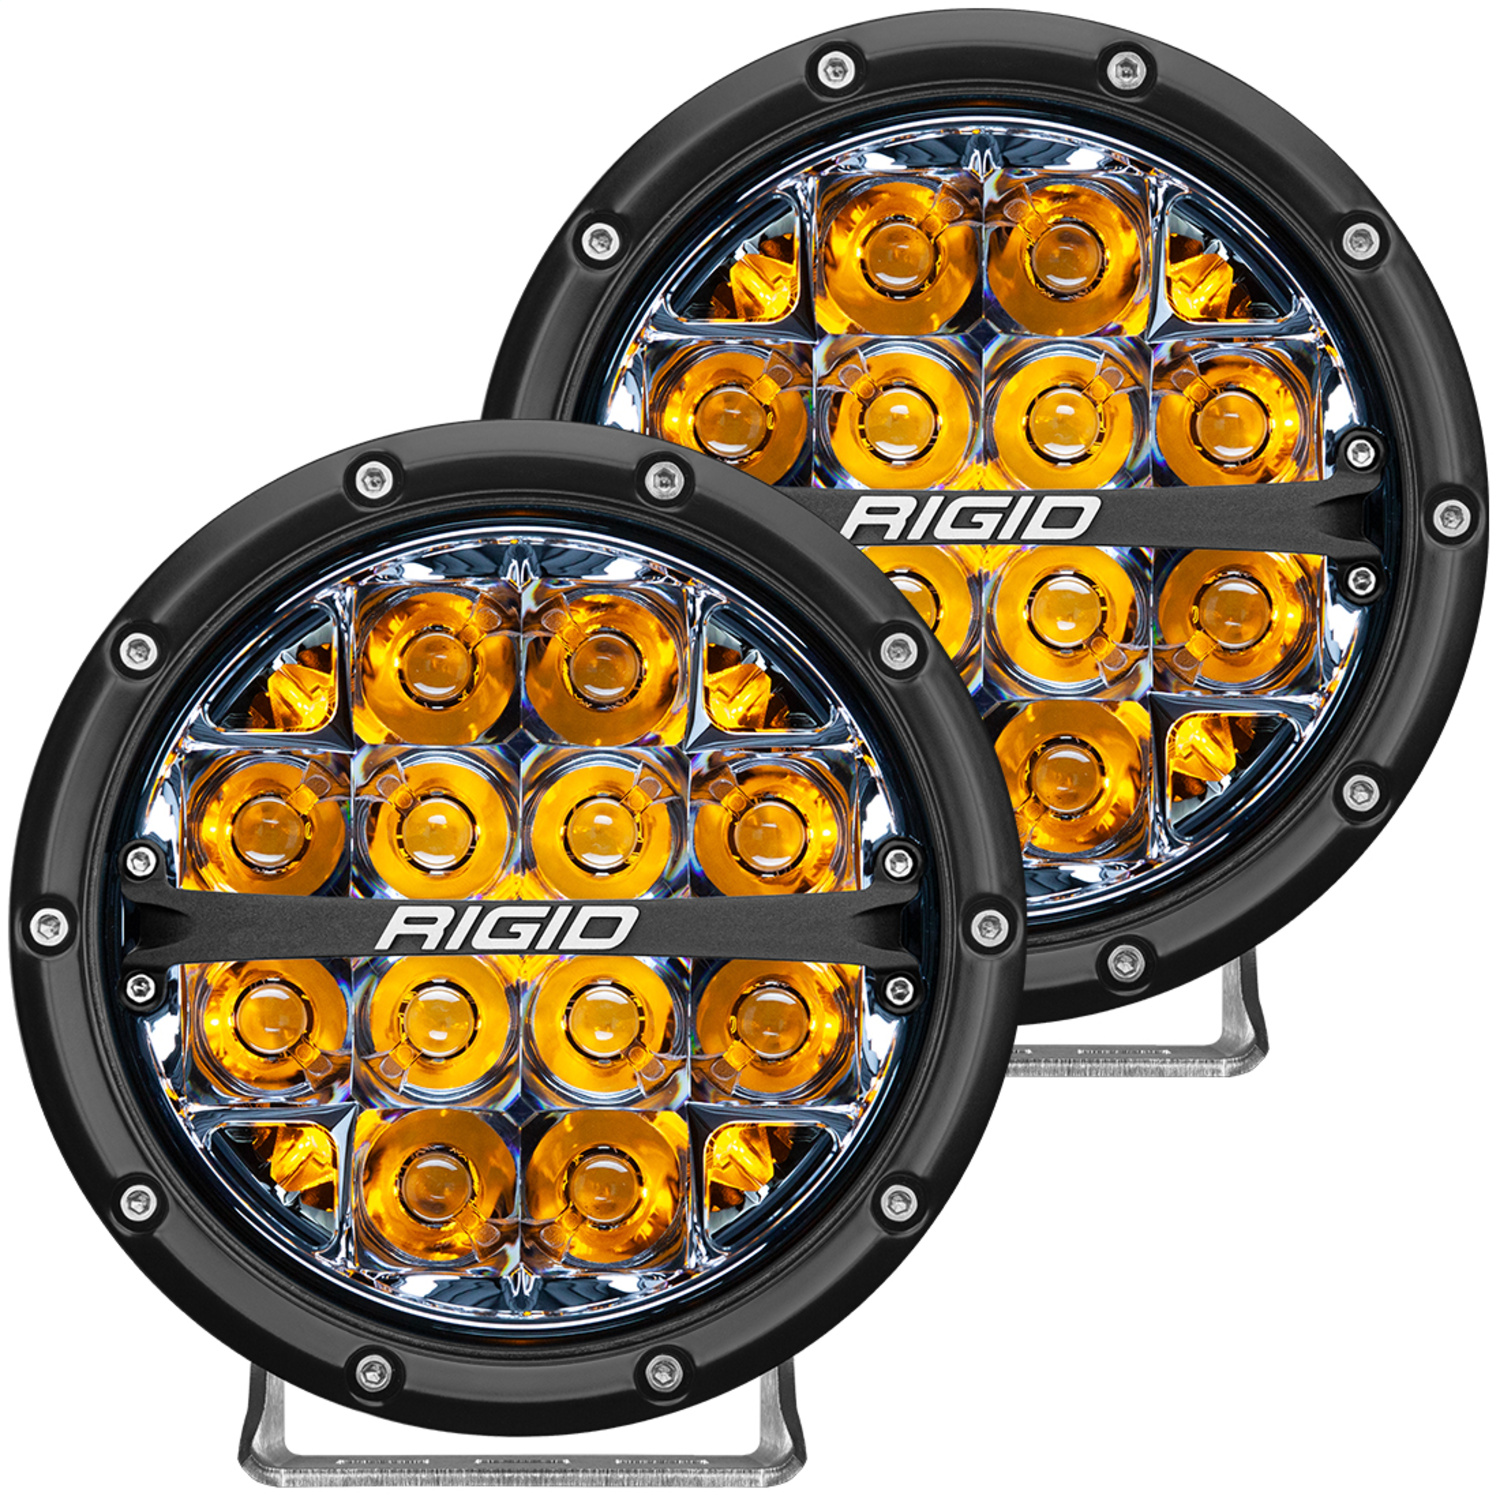 360-Series LED Off-Road Light, 6 in., Spot Beam, For High Speed 50 MPH Plus, Amber Backlight, Pair